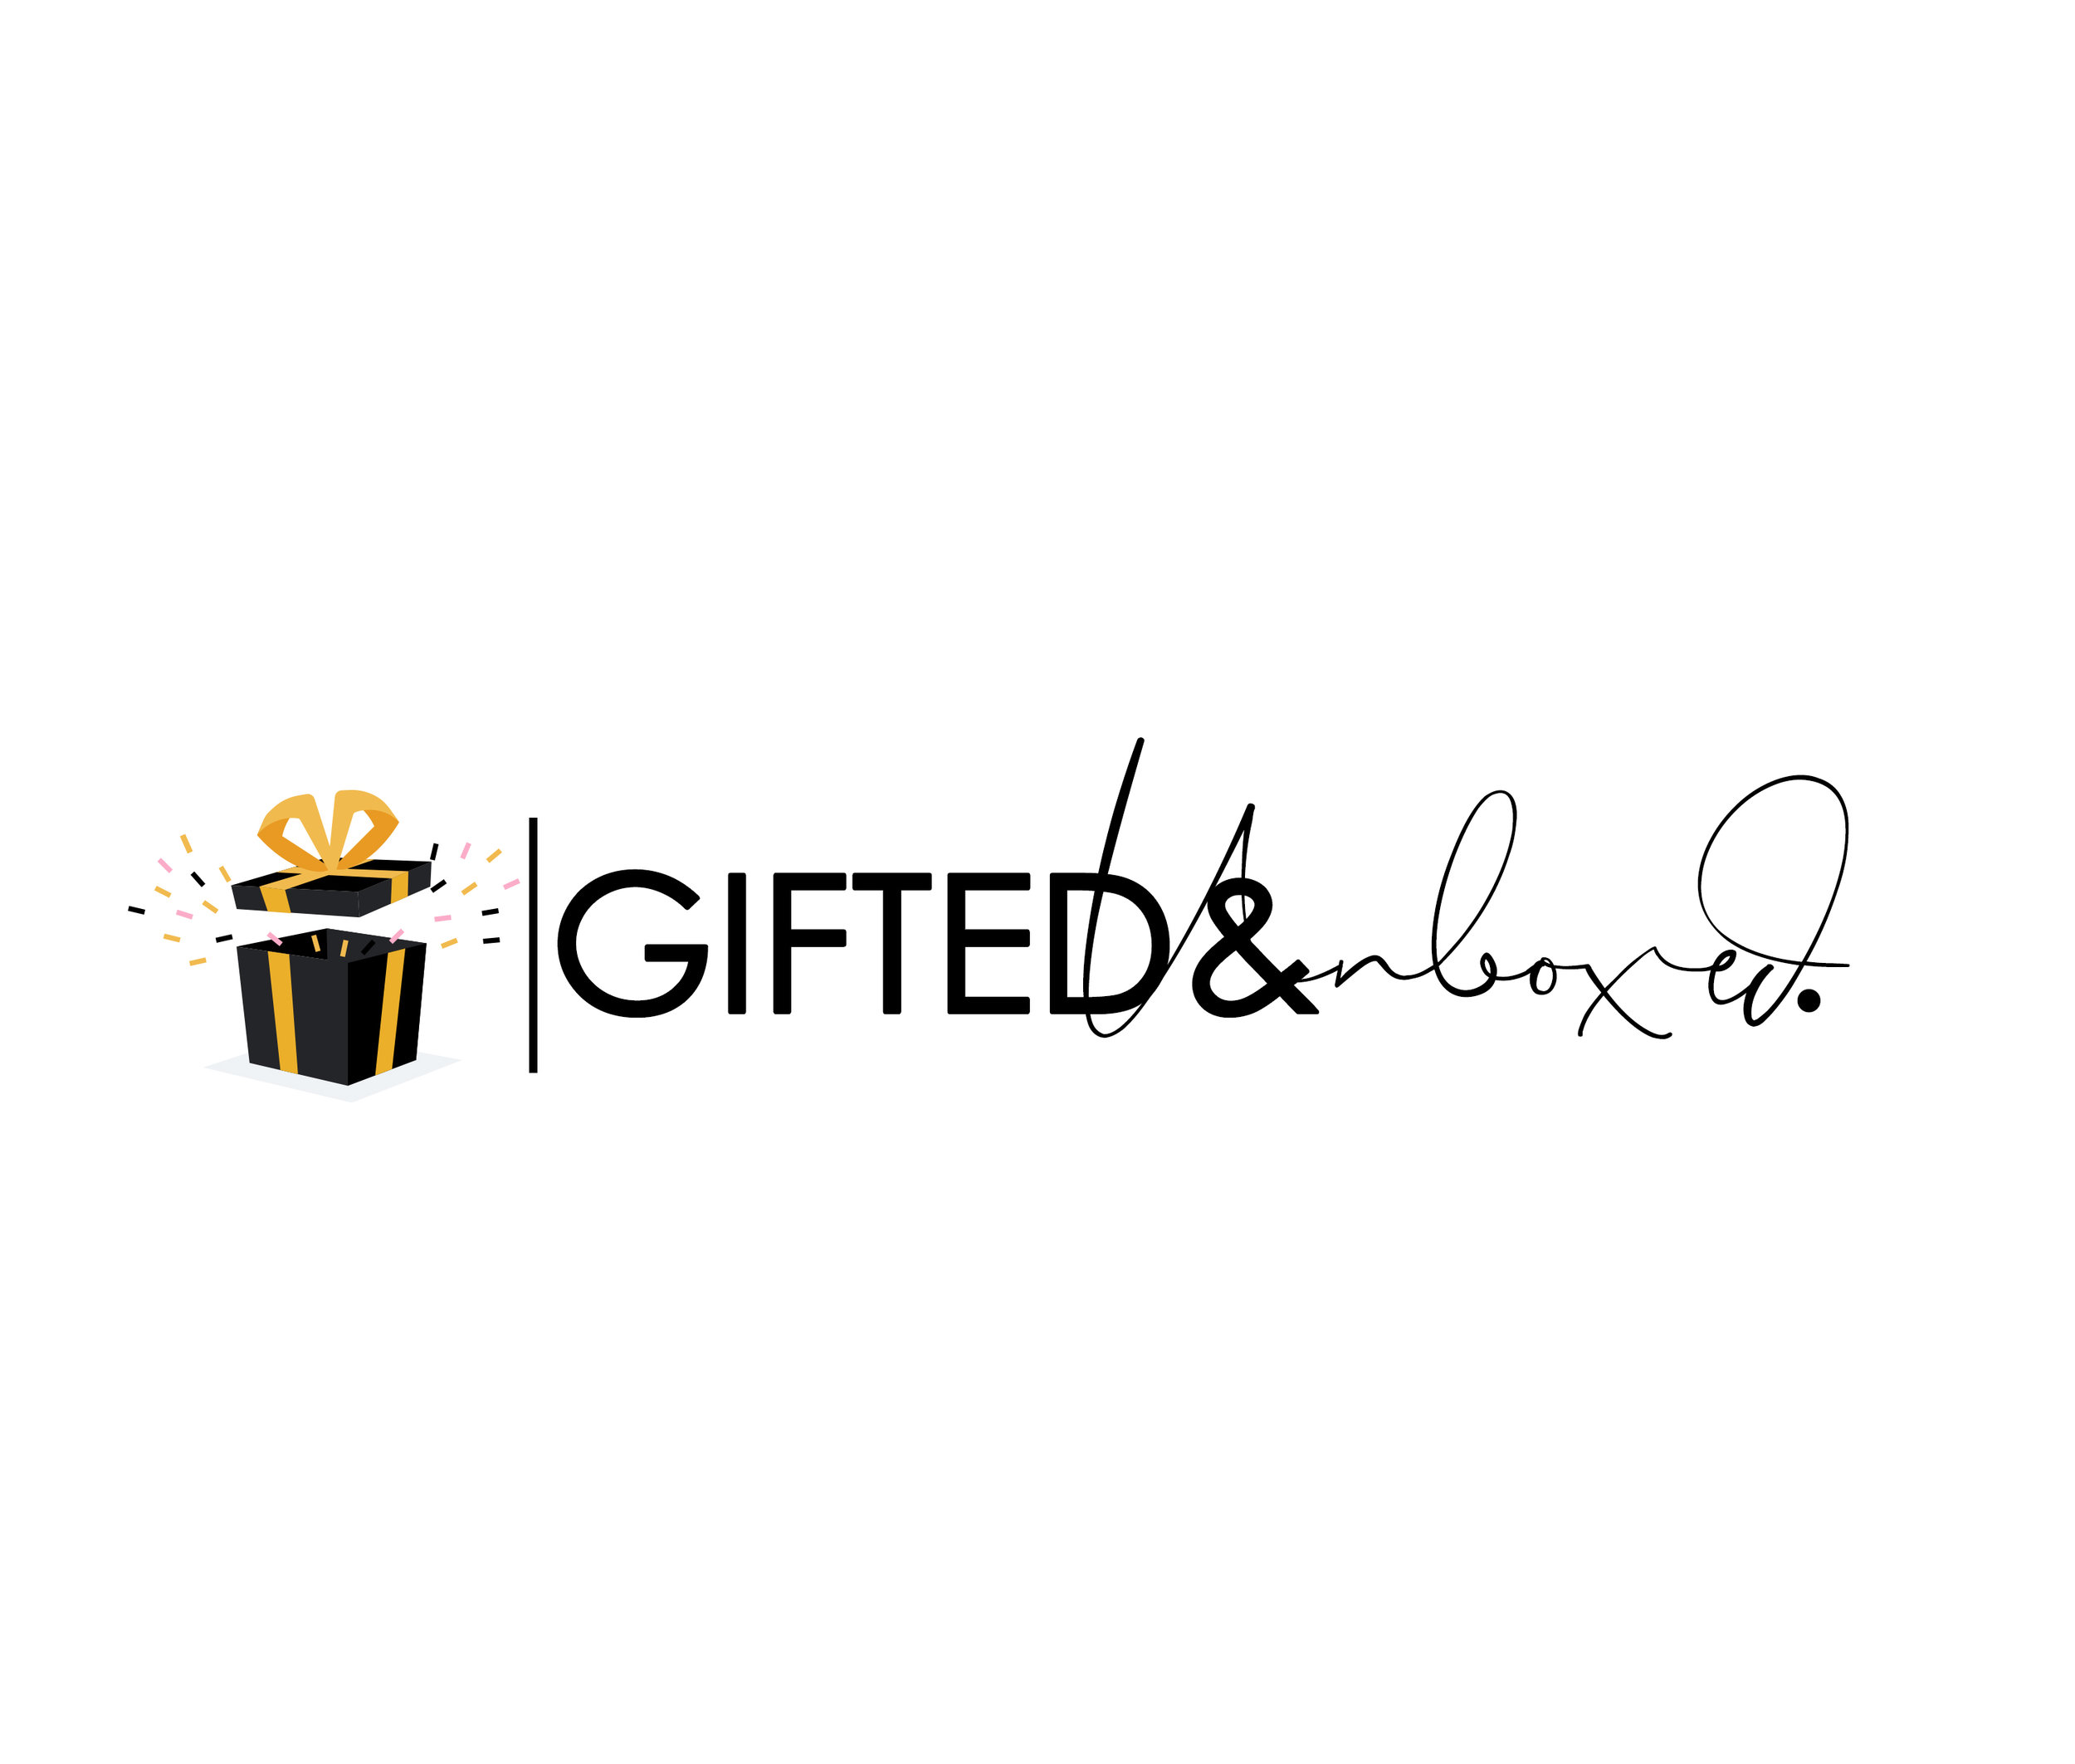 Gifted and Unboxed Logo Mockup.jpg